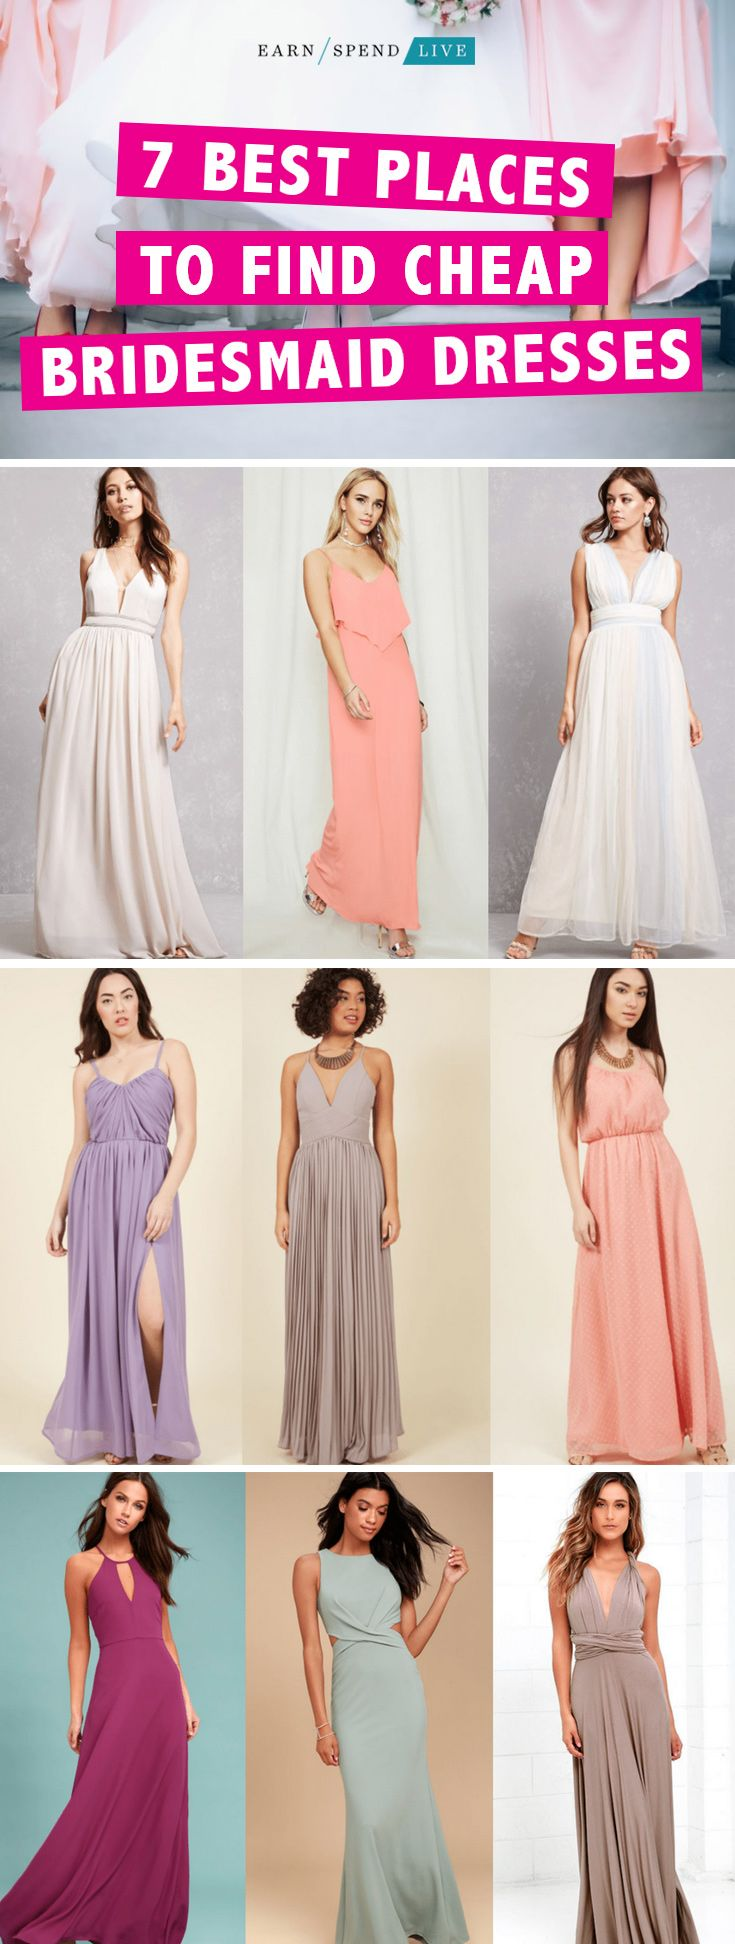 7 Best Places to Find Cheap Bridesmaid Dresses. Bridesmaid dress ideas, affordable bridesmaid dresses, best places to buy bridesmaid dresses, best places to purchase bridesmaid dresses, wedding planning, affordable wedding planning, bridesmaid dresses on a budget, budget bridesmaid dresses